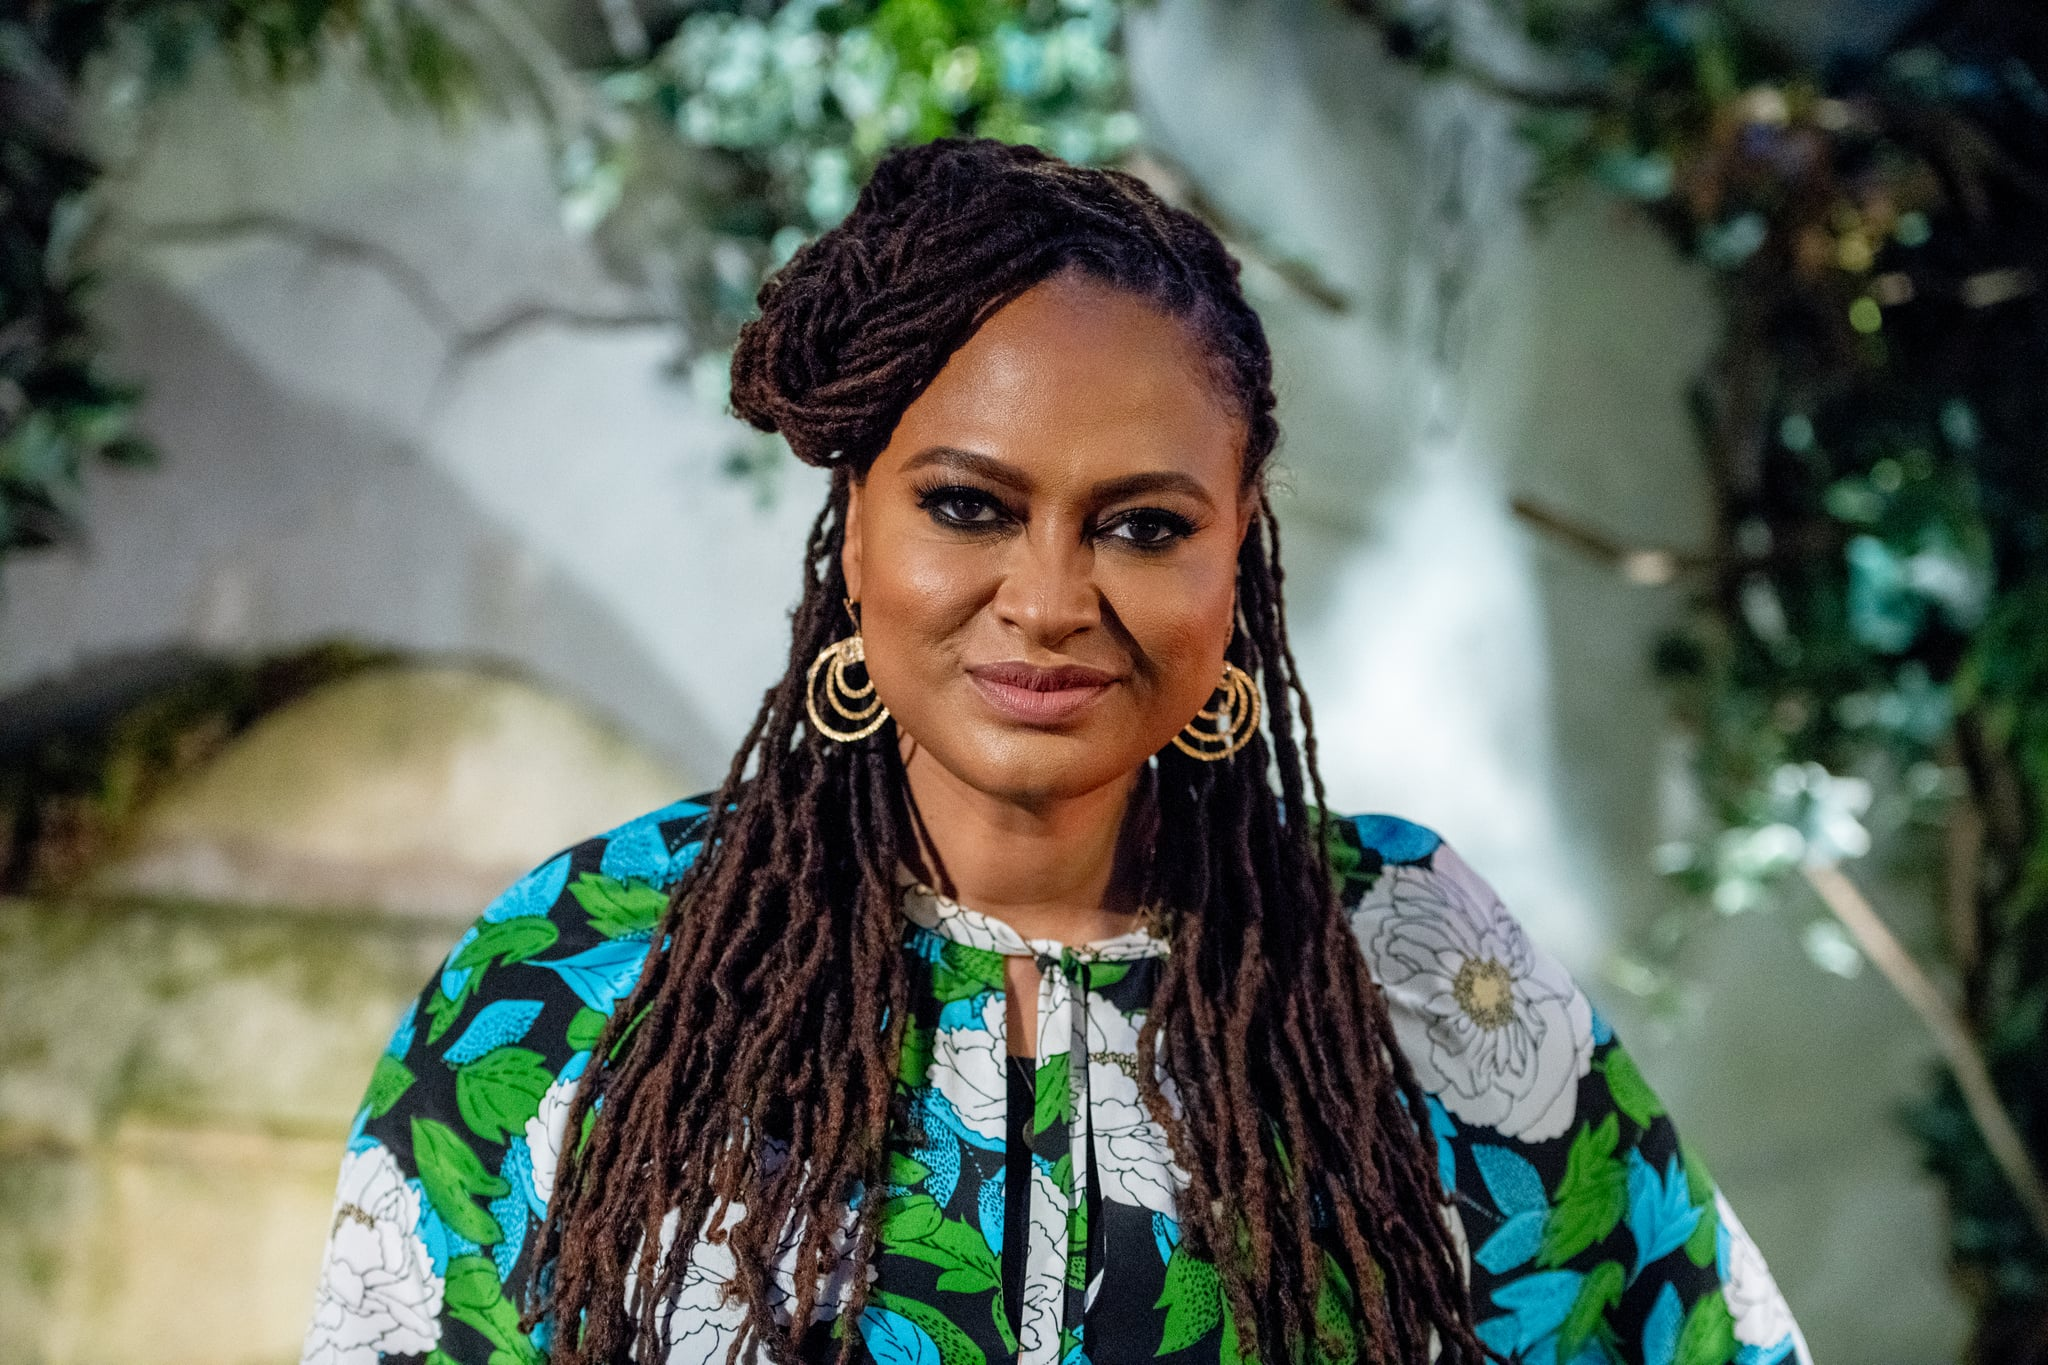 NEW YORK, NY - MAY 20:  Ava DuVernay  attends The Cinema Society with OWN host the 'Queen Sugar' garden cocktail party at Laduree Soho on May 20, 2018 in New York City.  (Photo by Roy Rochlin/Getty Images)